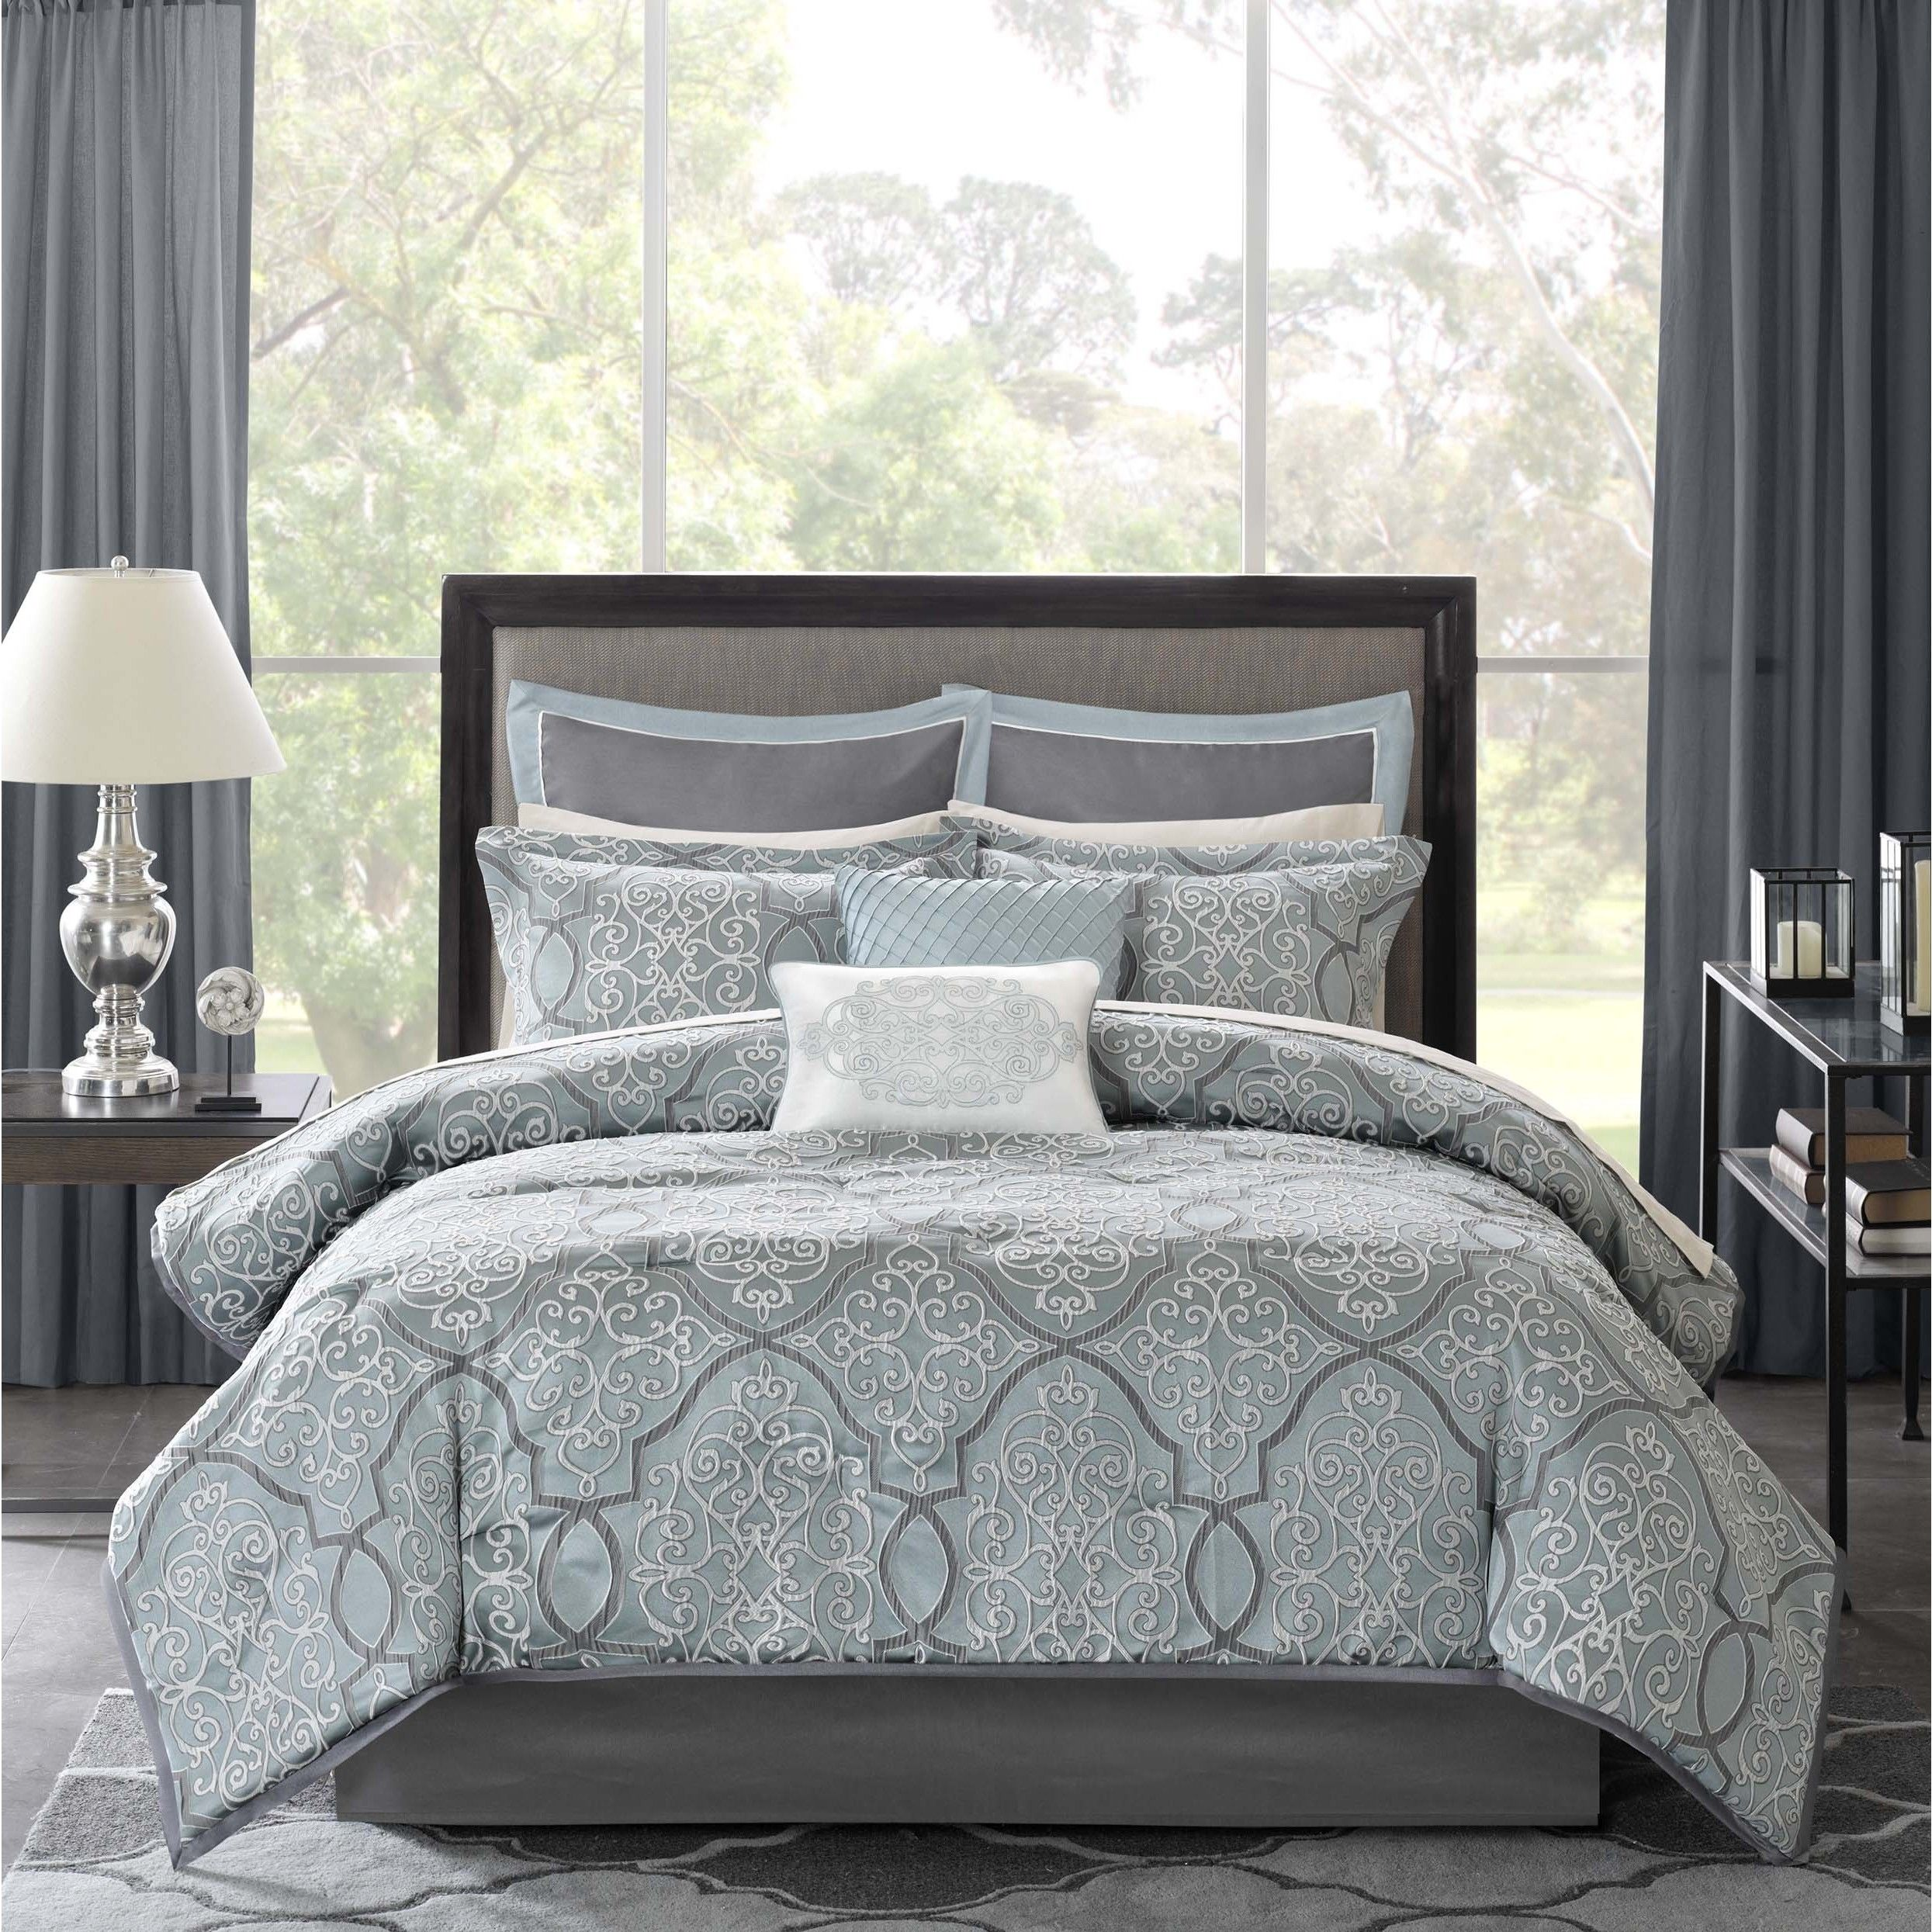 Madison Park Anouk 12 Piece Jacquard Bed in a Bag Set Overstock